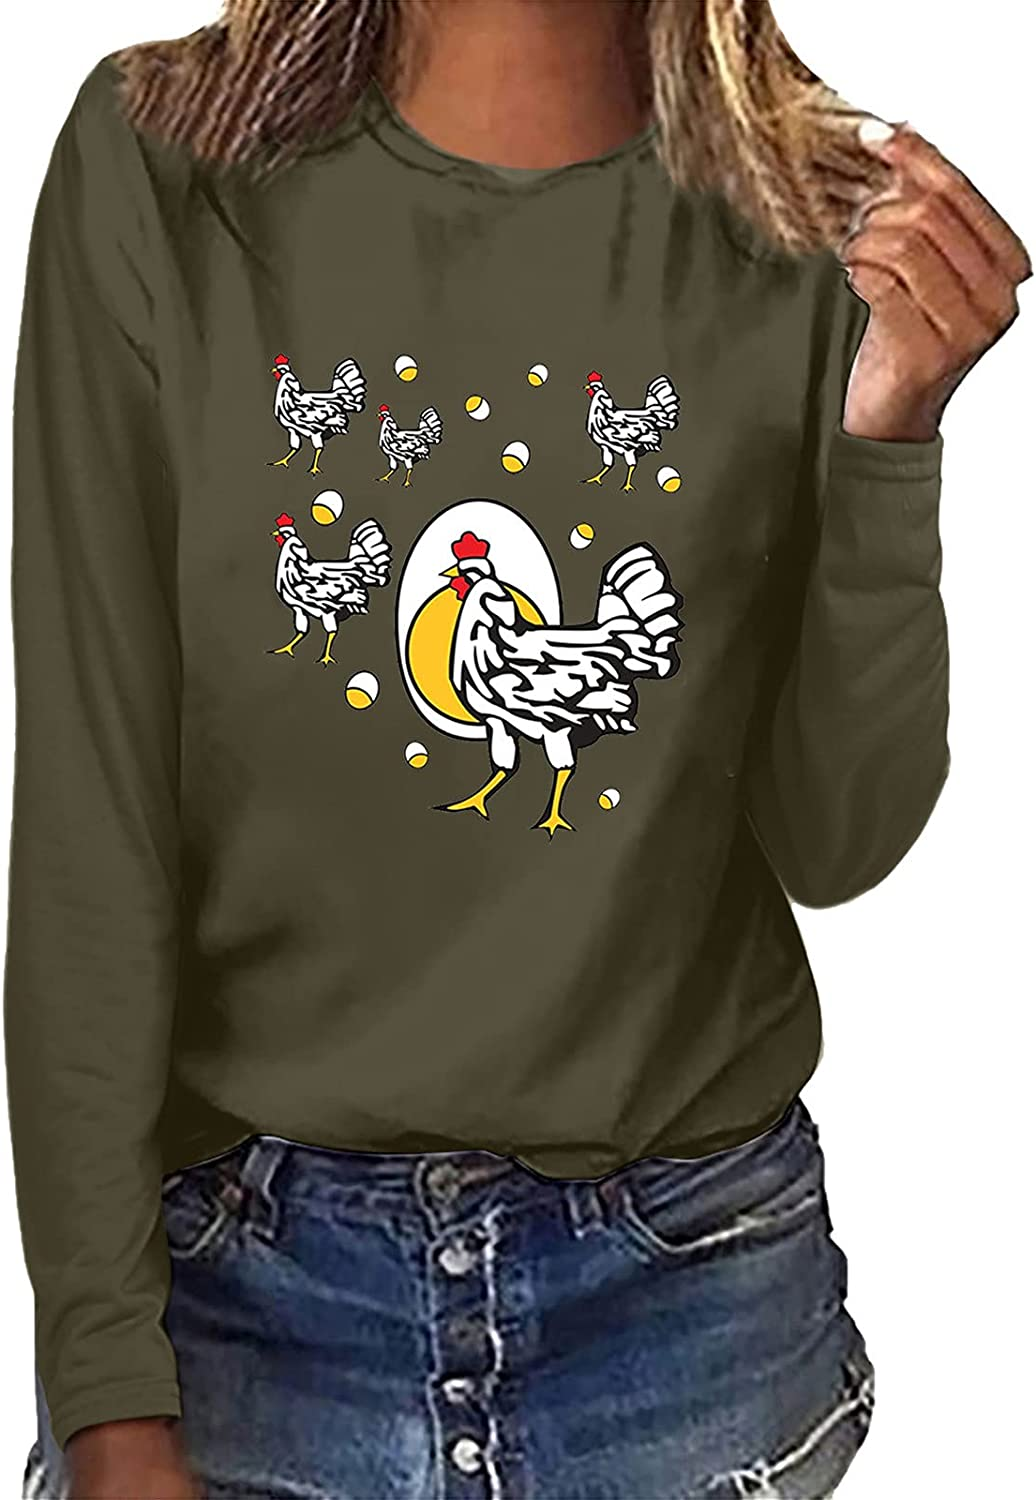 Womens Autumn Loose Long Sleeve Sweatshirt Tops Slim Printed Crew Neck Pullover Casual Asymmetry Blouses T-Shirts